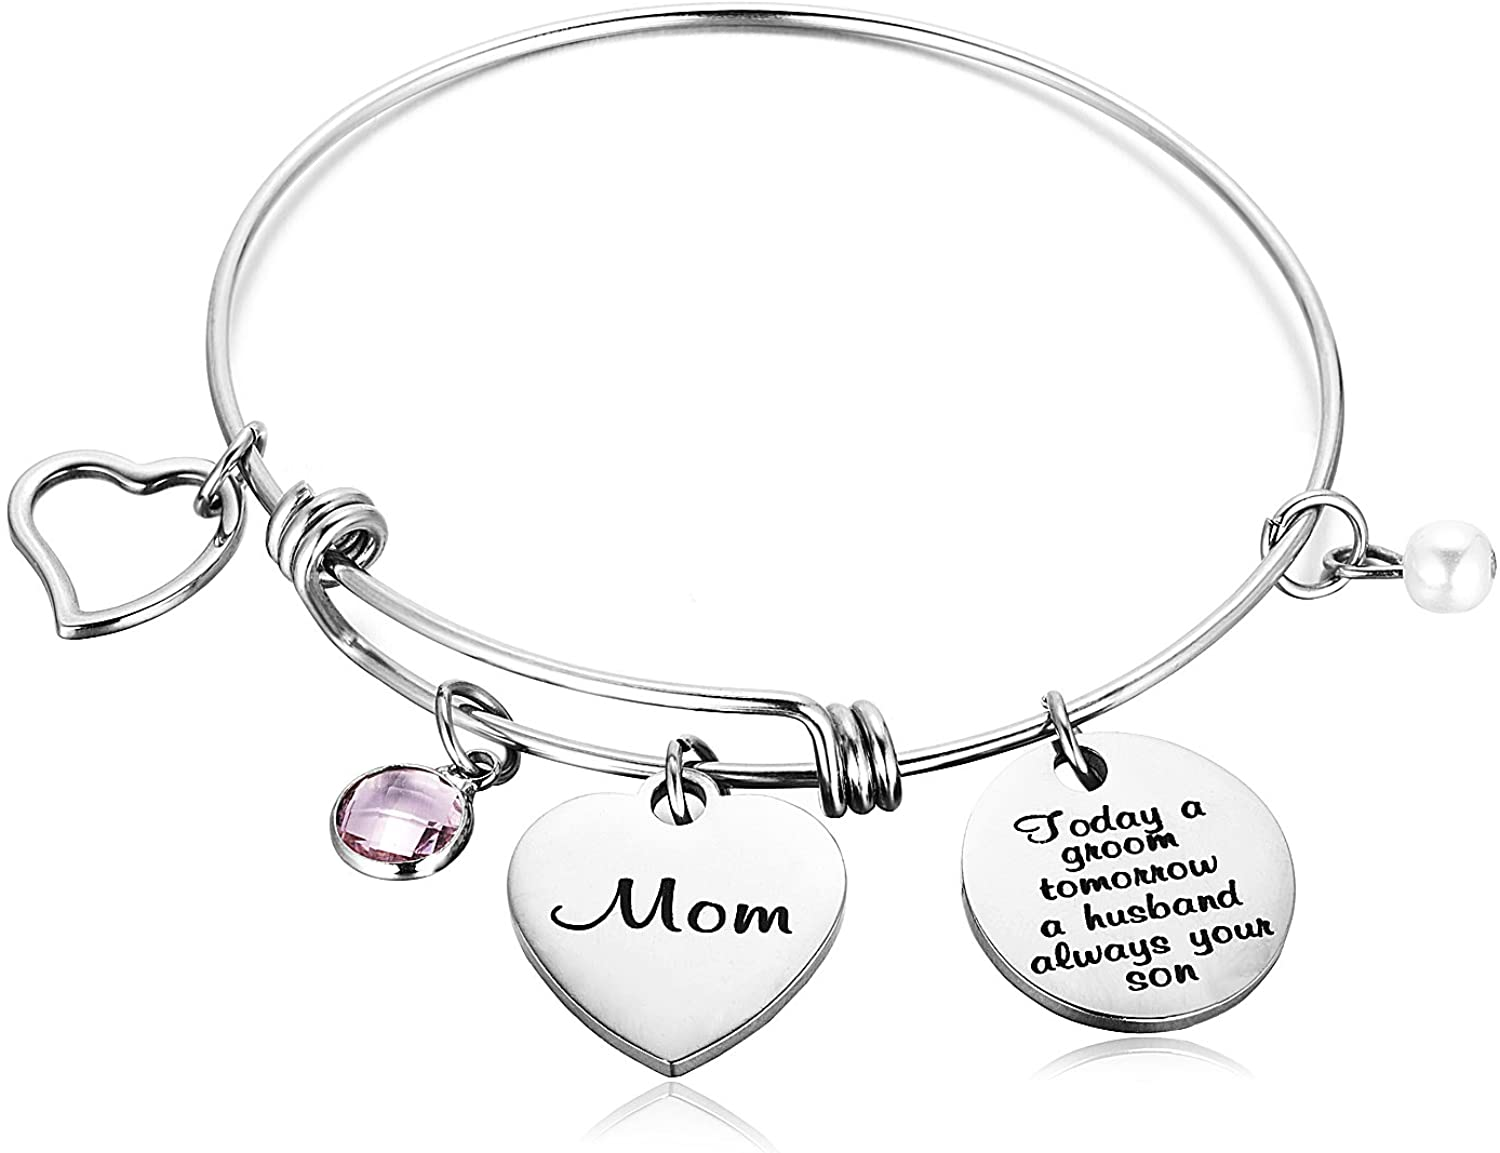 FAINOL Mother of The Groom Bracelet Gift - Today a Groom Tomorrow a Husband Always Your Son Wedding Bracelet - Pearl Birthstone, Stainless Steel Bracelet - Ideal Bracelet Gift for Mother in Law